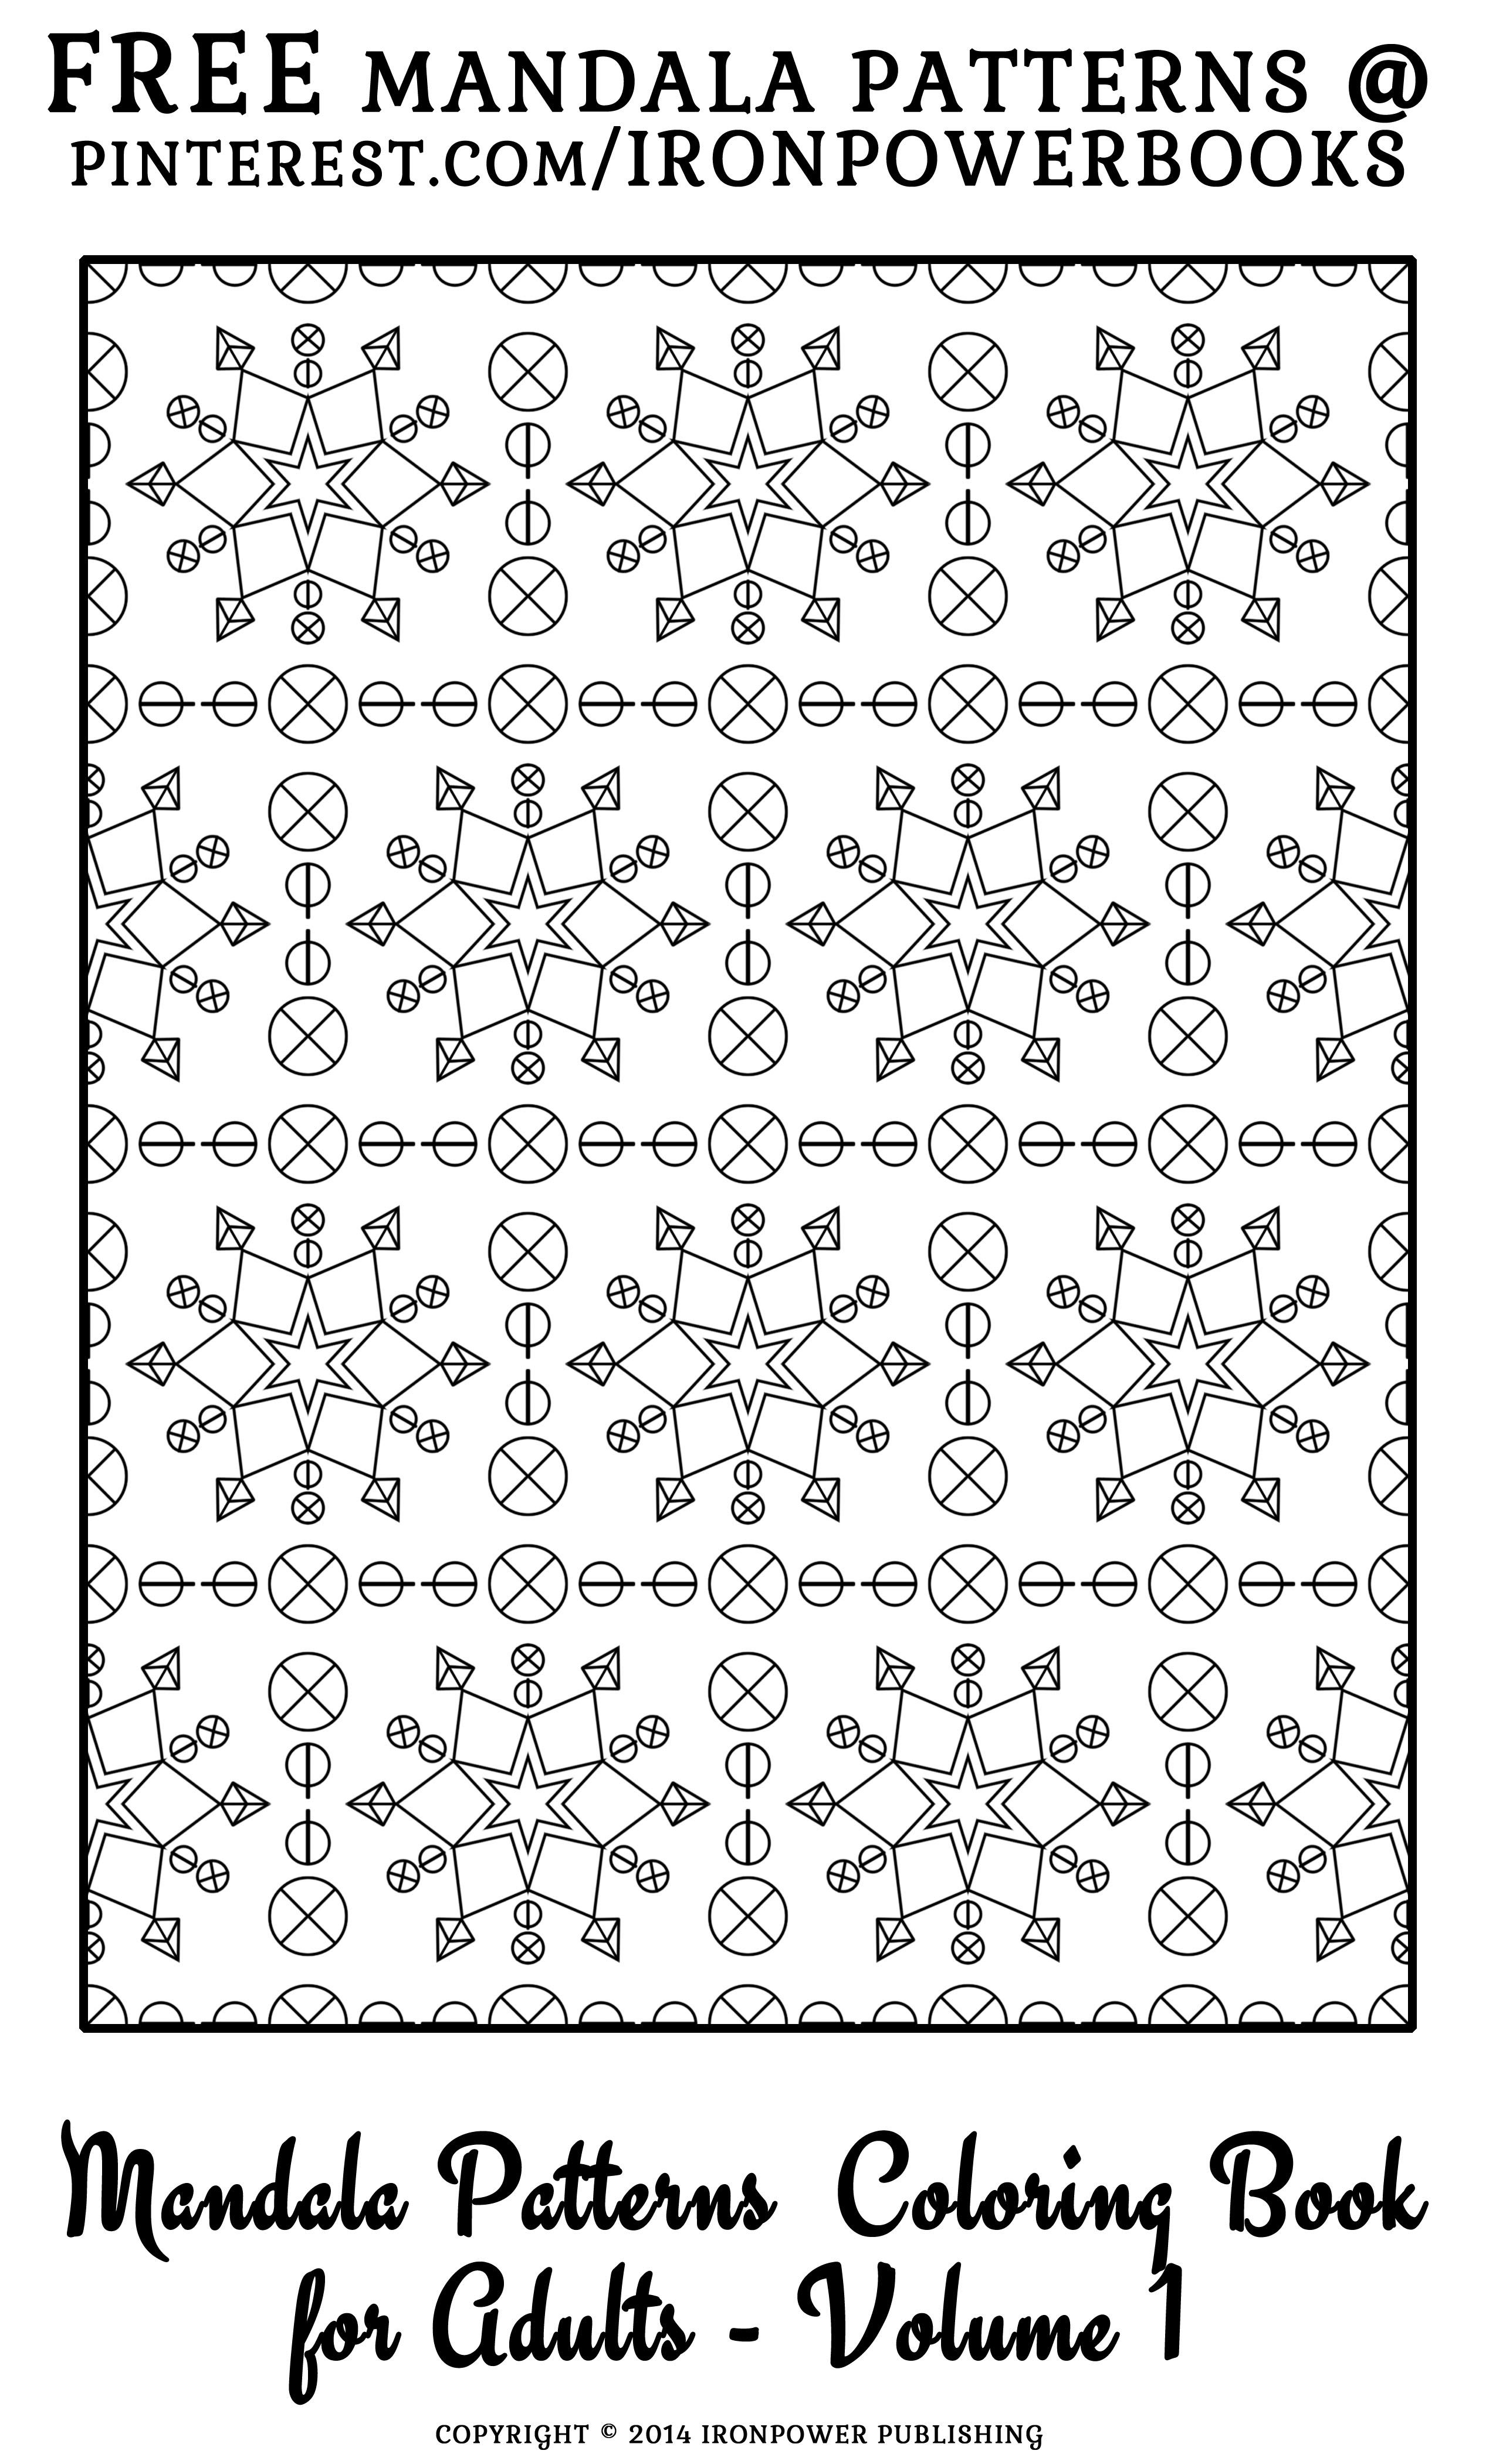 Pattern coloring pages for free ironpowerbooks please use freely